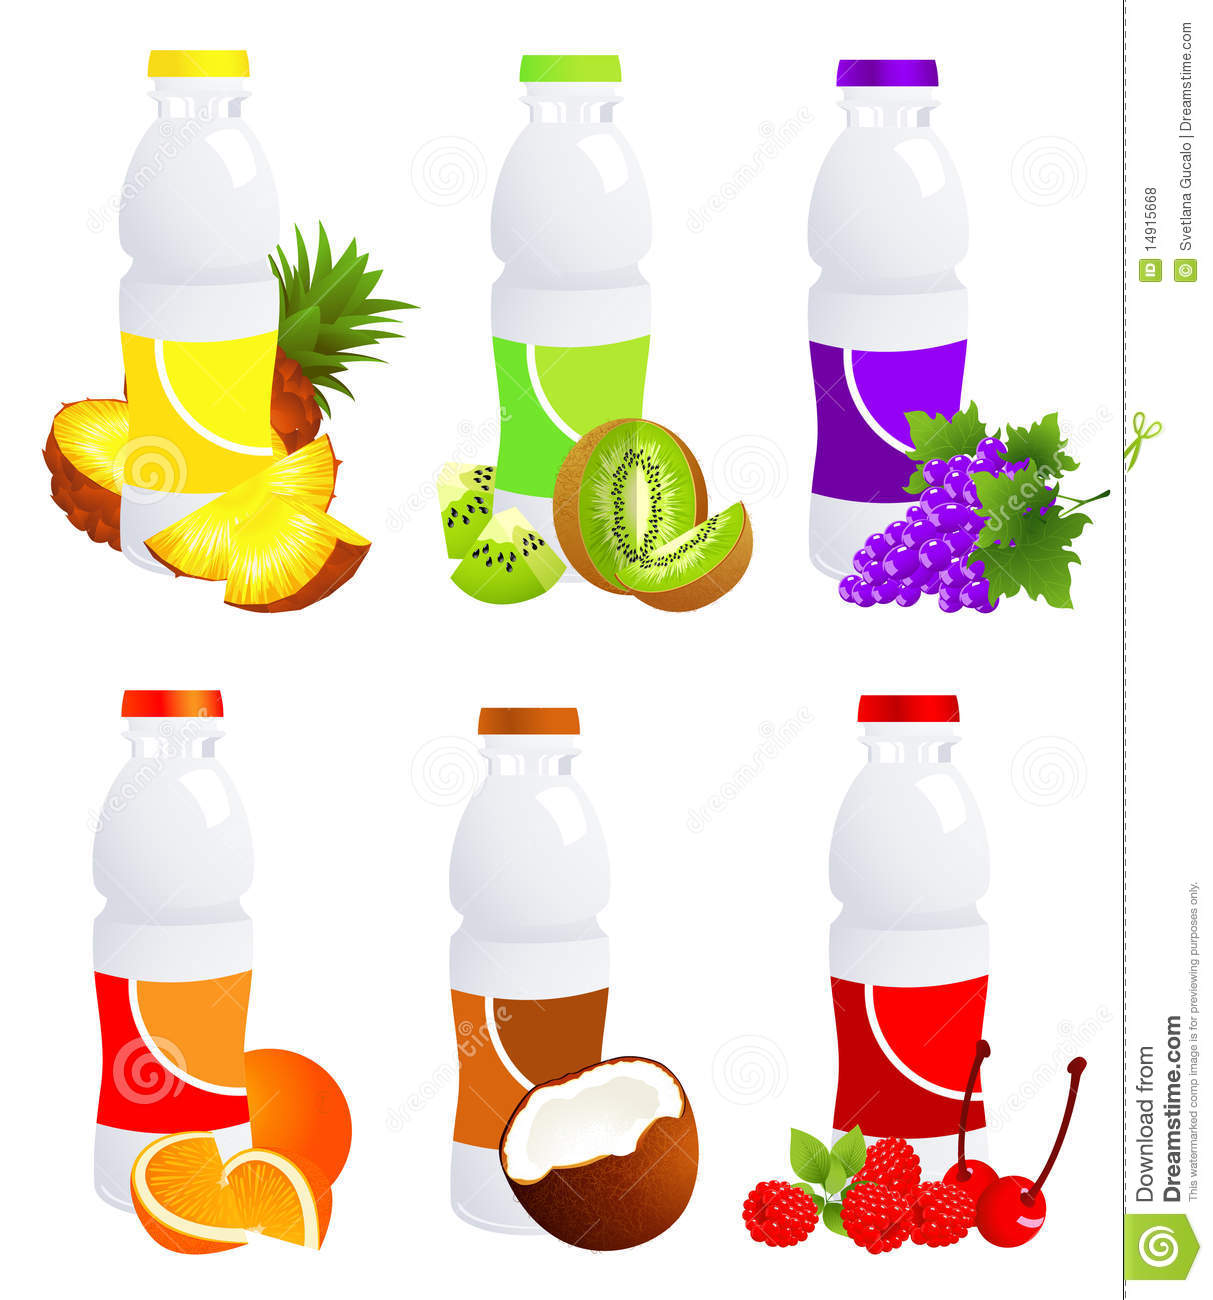 Stock Illustration Drinks Soda Cans Jars Vector Illustration Beverage Packaging Cola Water Beer Soft Design Image71484095 furthermore Je Suis Grapefriend additionally Fotografie Stock Libere Da Diritti Bottiglie Del Succo Di Frutta Image14915668 moreover Orange Juice Gallon Container likewise Stock Vector Home Objects Collection. on cartoon juice bottle